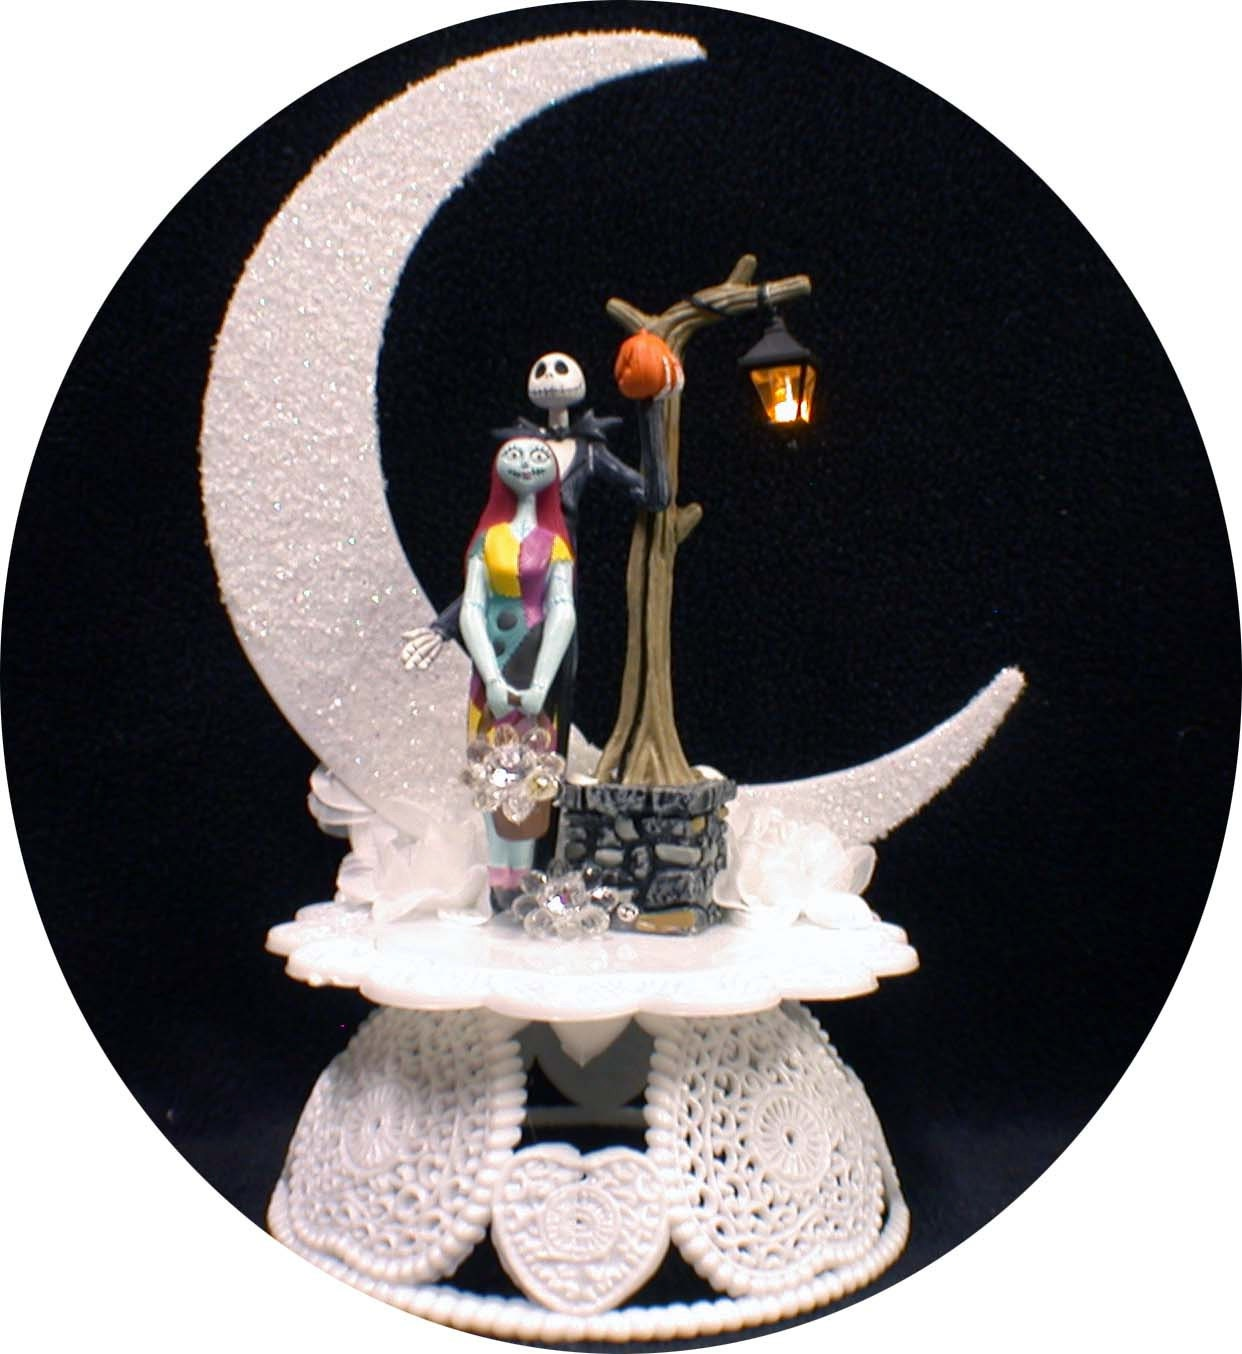 Cake Toppers For Christmas : Items similar to Nightmare before Christmas Wedding Cake ...